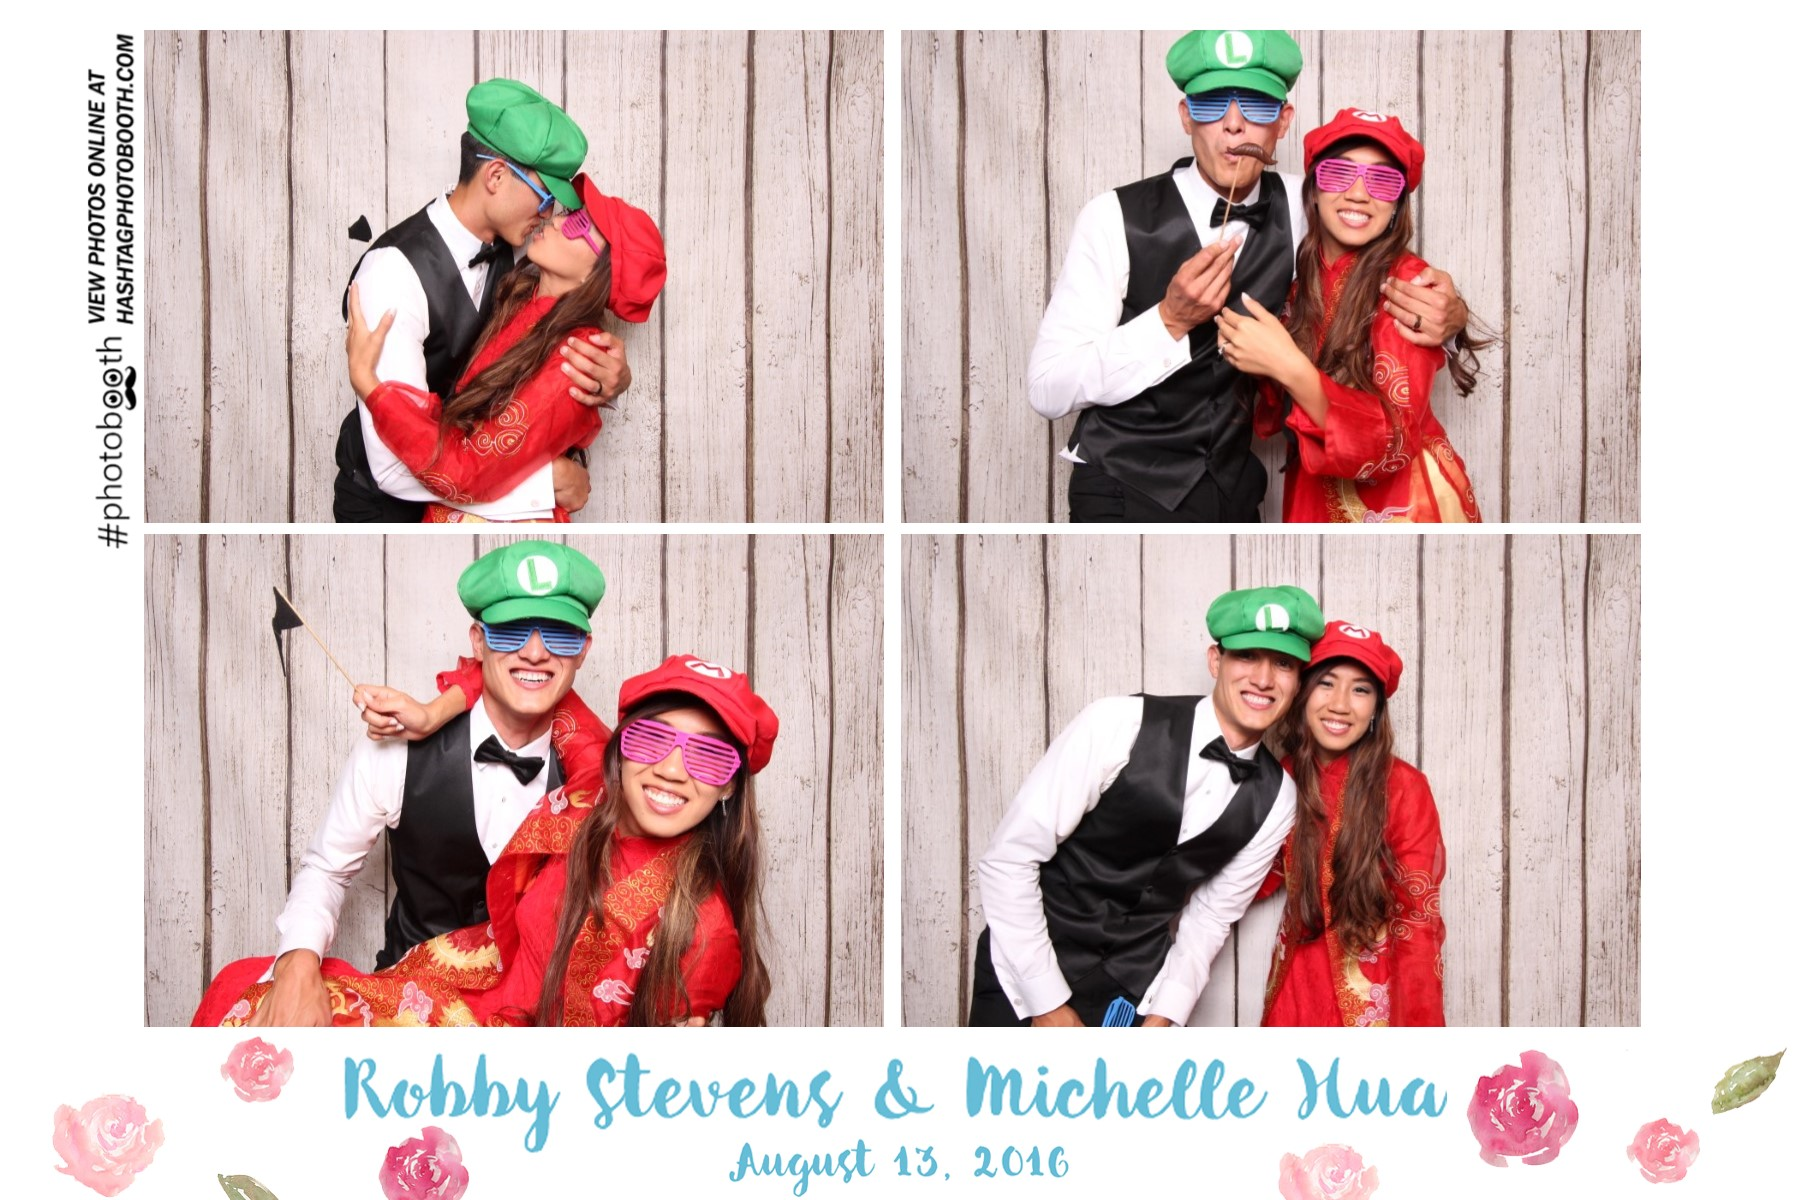 Robby & Michelle